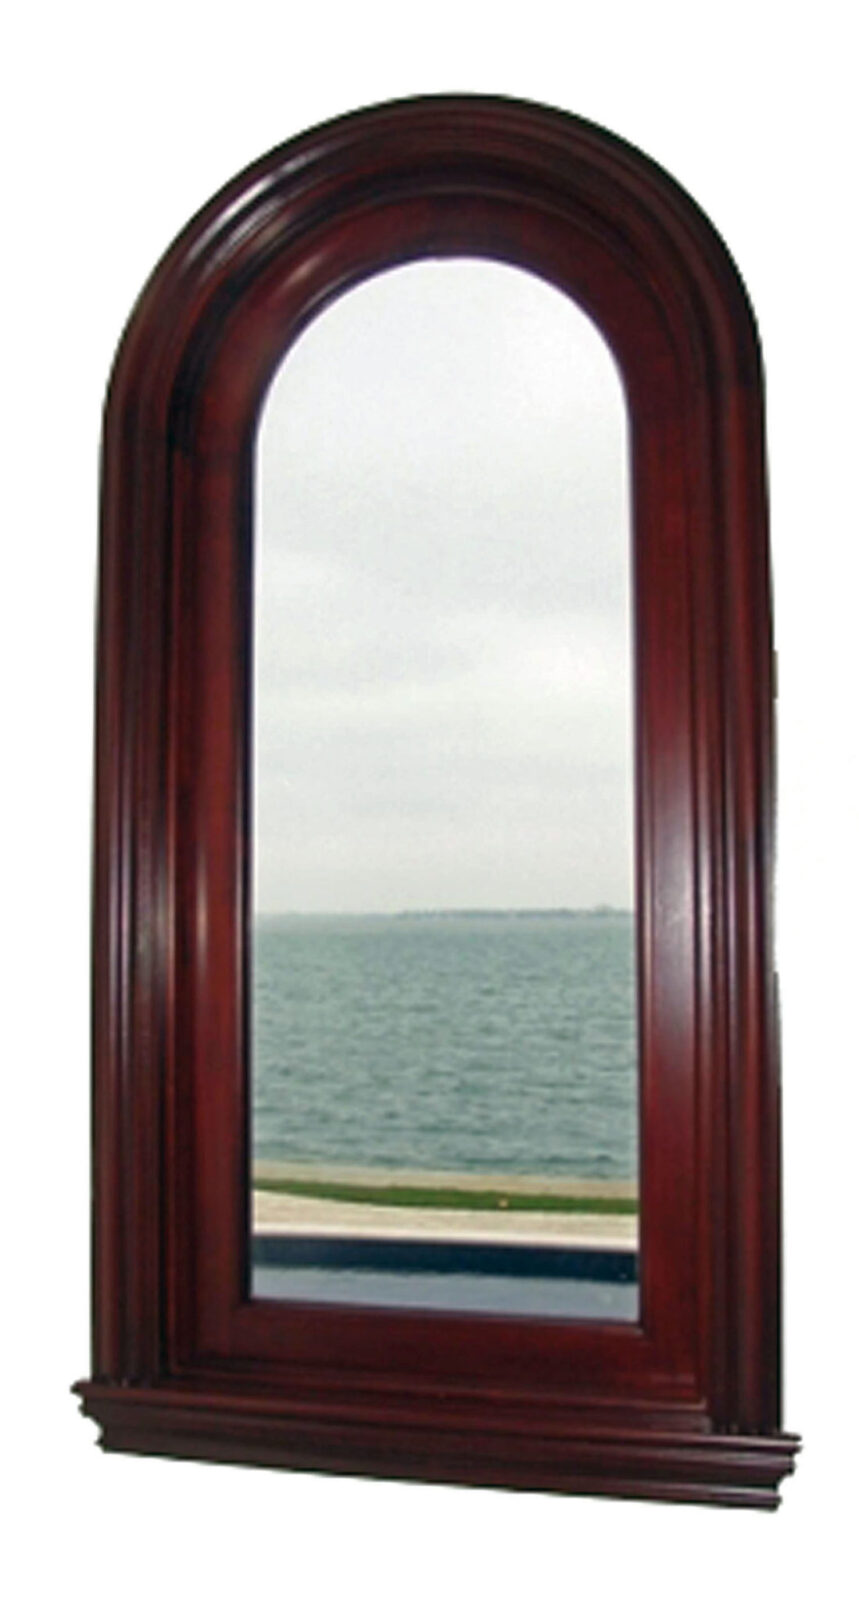 SOUTH MIAMI BEACH FIXED ARCHED WINDOW